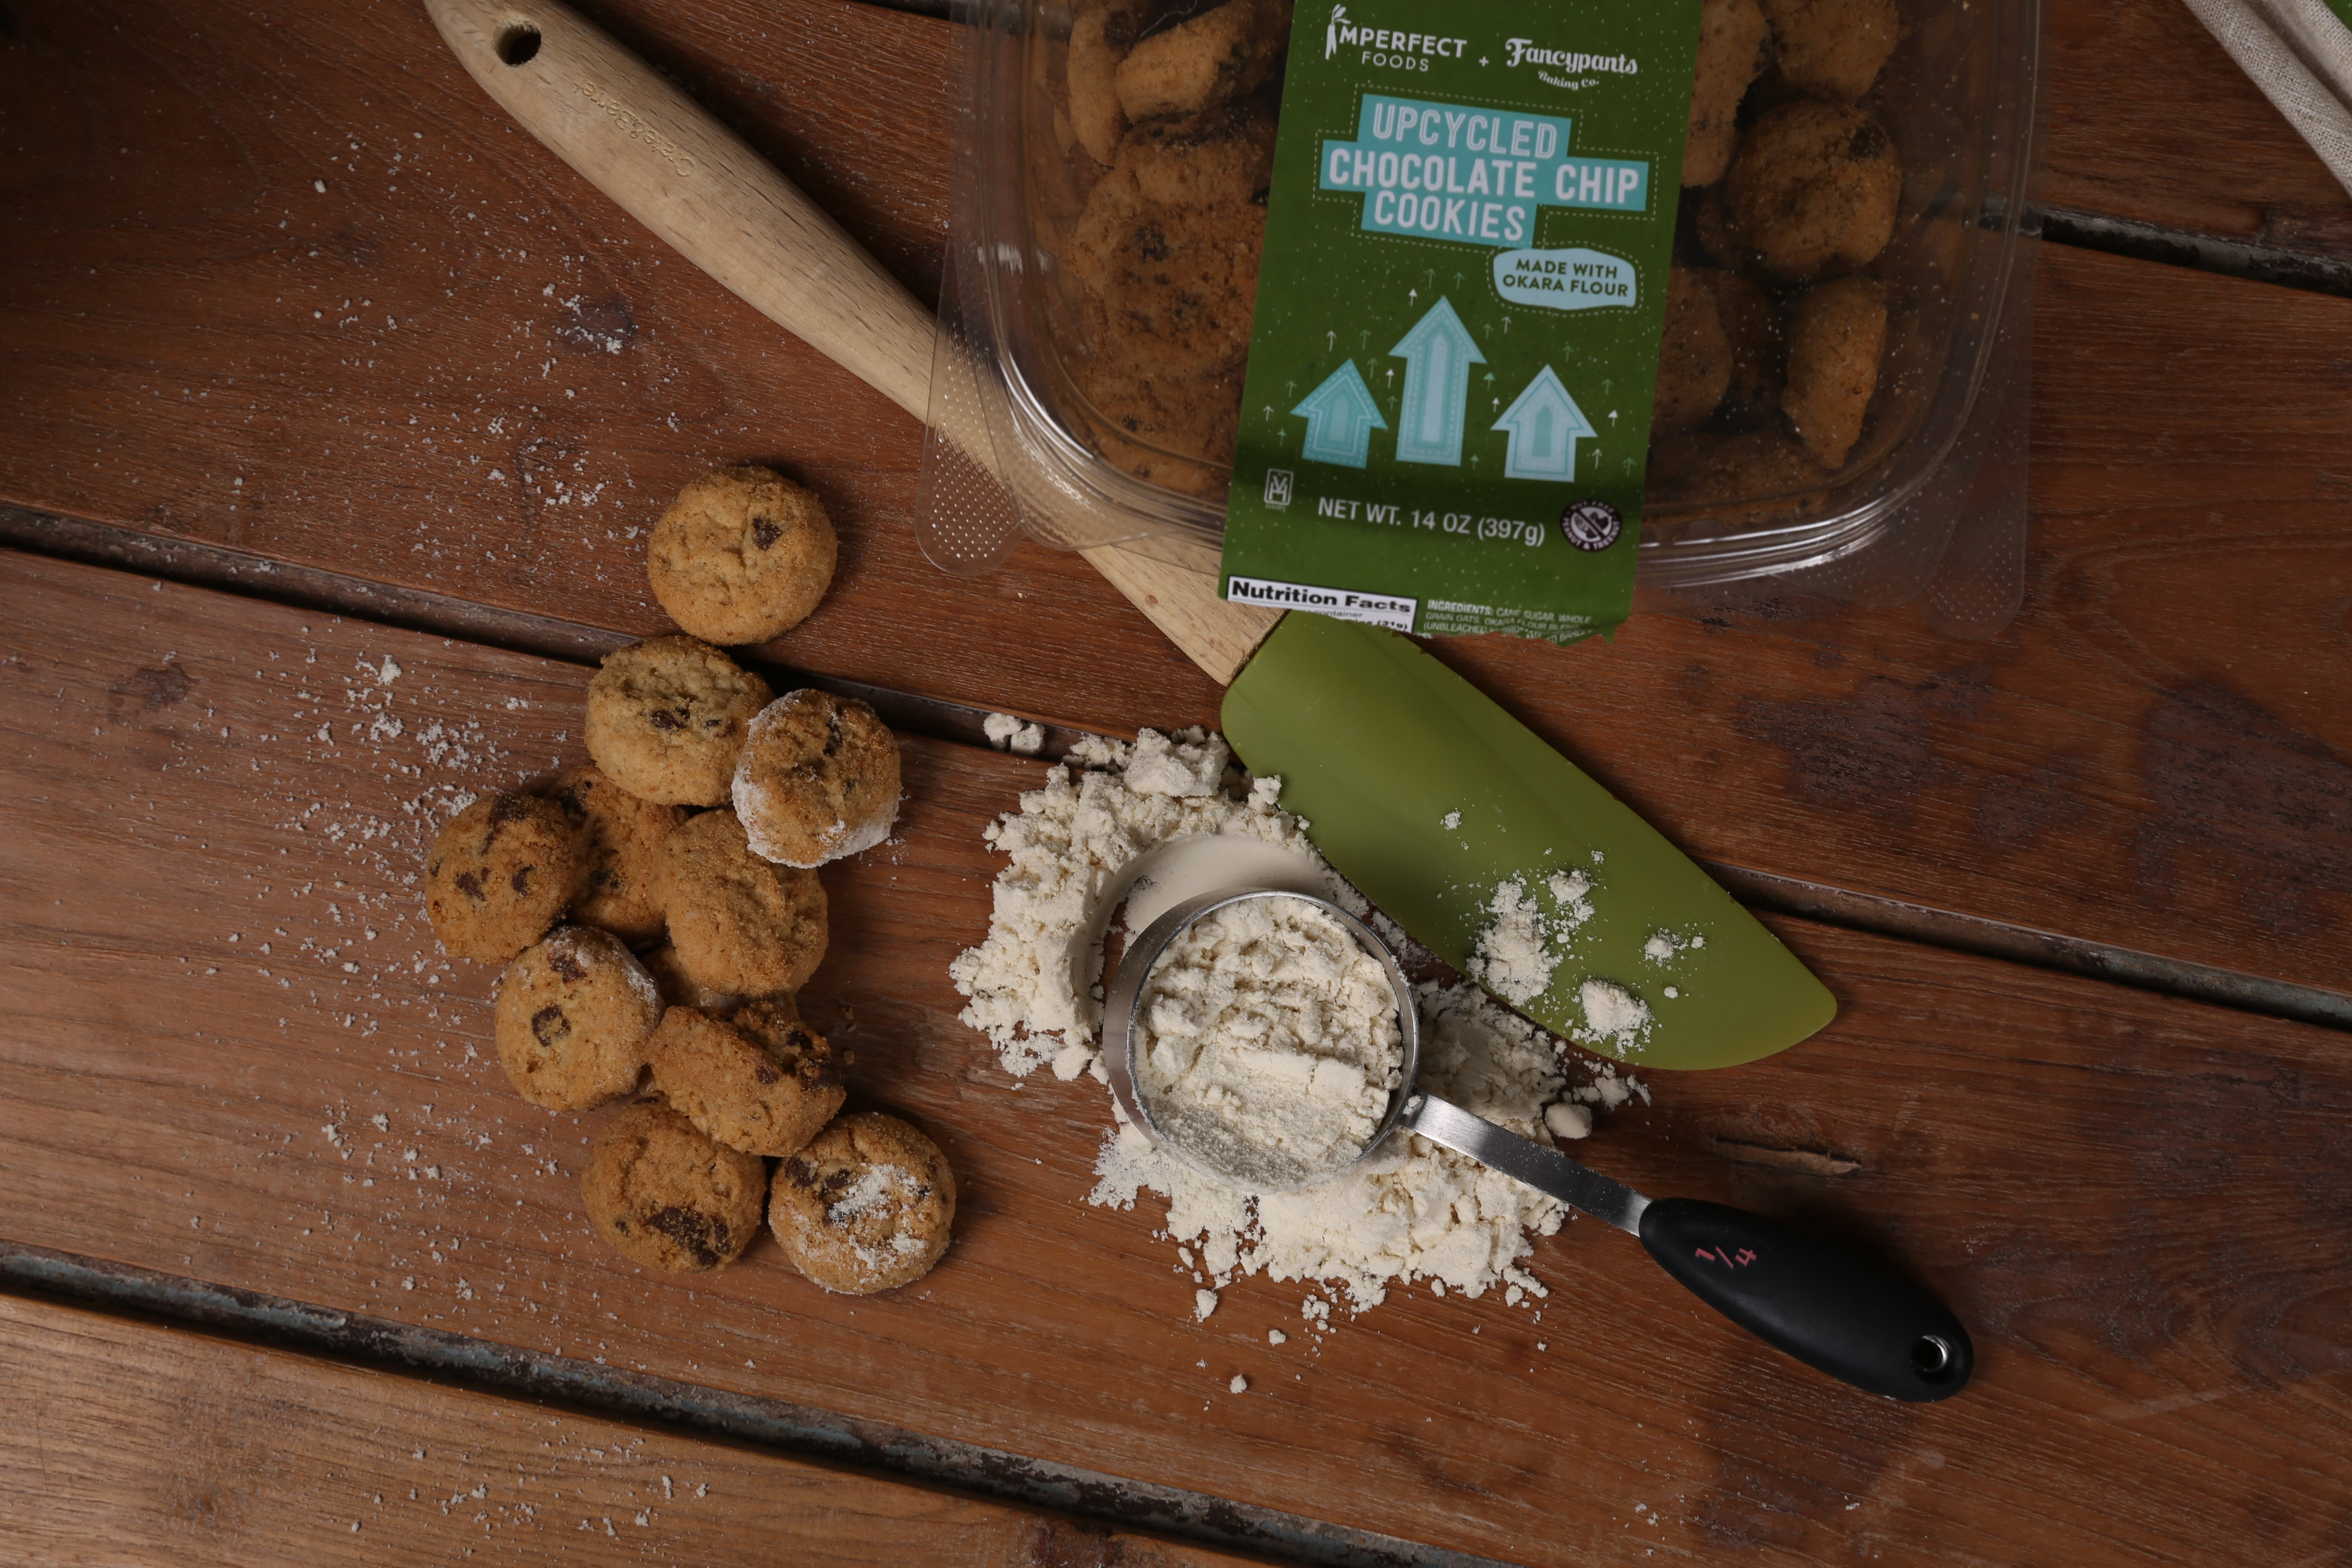 Fancypants Baking Co. Announces First Flavor in New Line of Cookies Made With Upcycled Ingredients